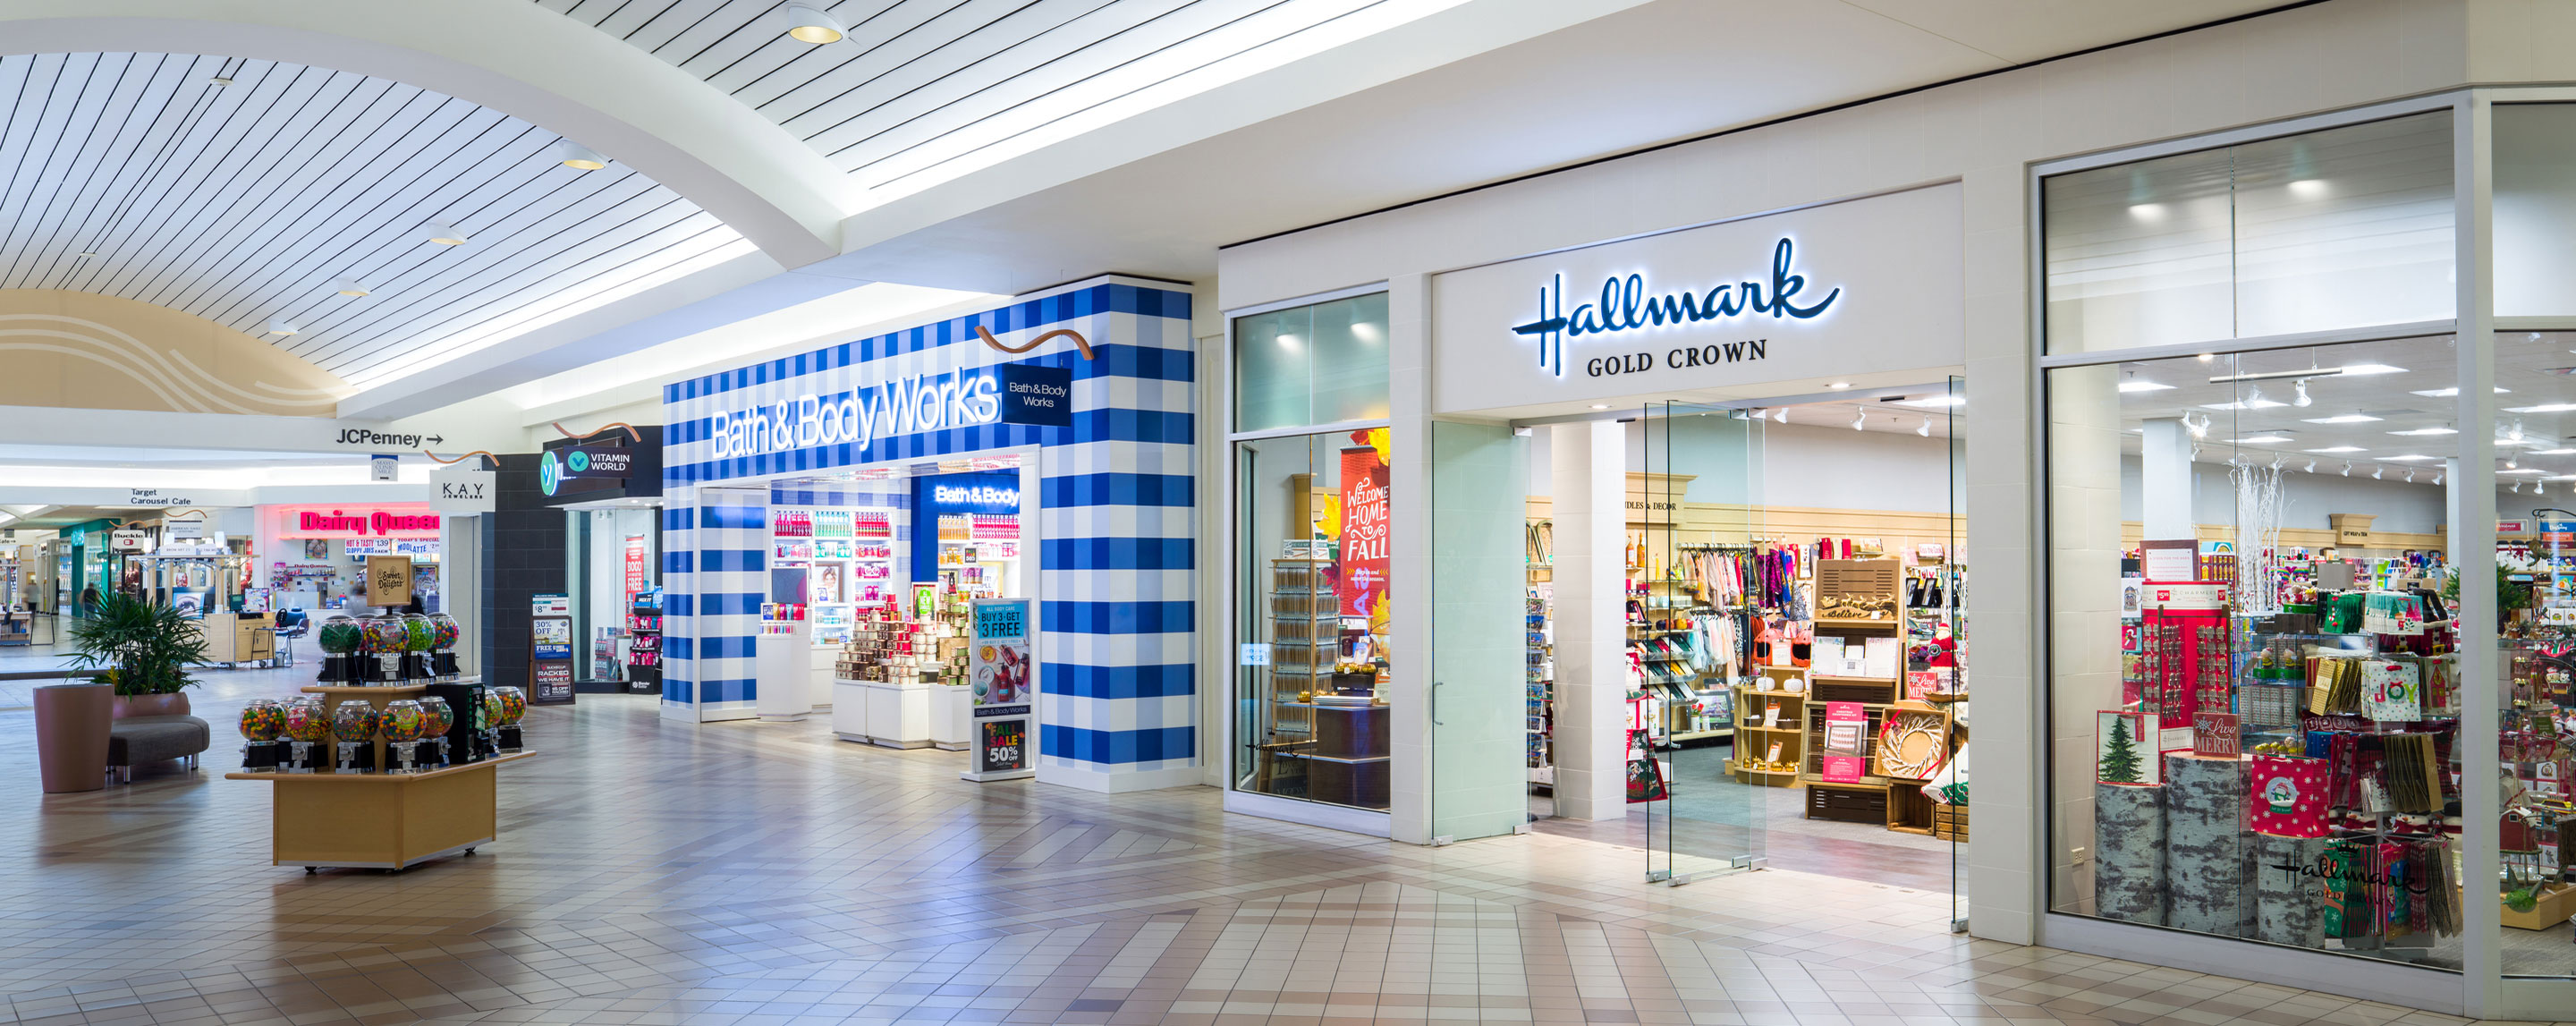 Bath and Body Works and Hallmark at River Hills Mall